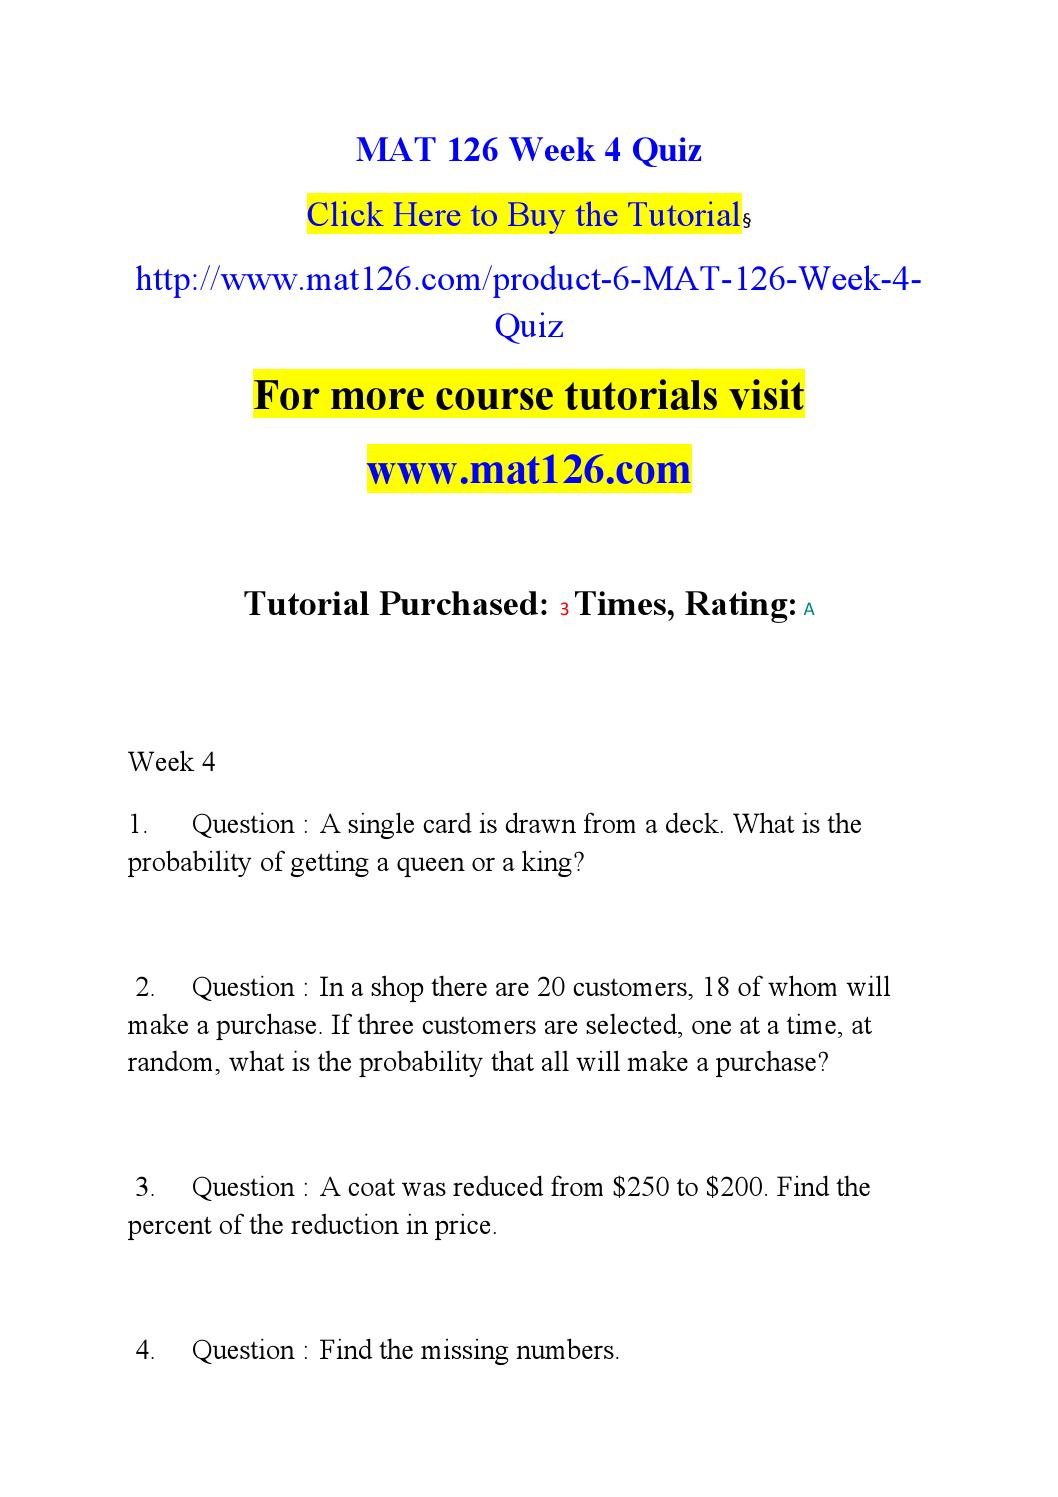 MAT 126 Week 1 Assignment Geometric and Arithmetic Sequence